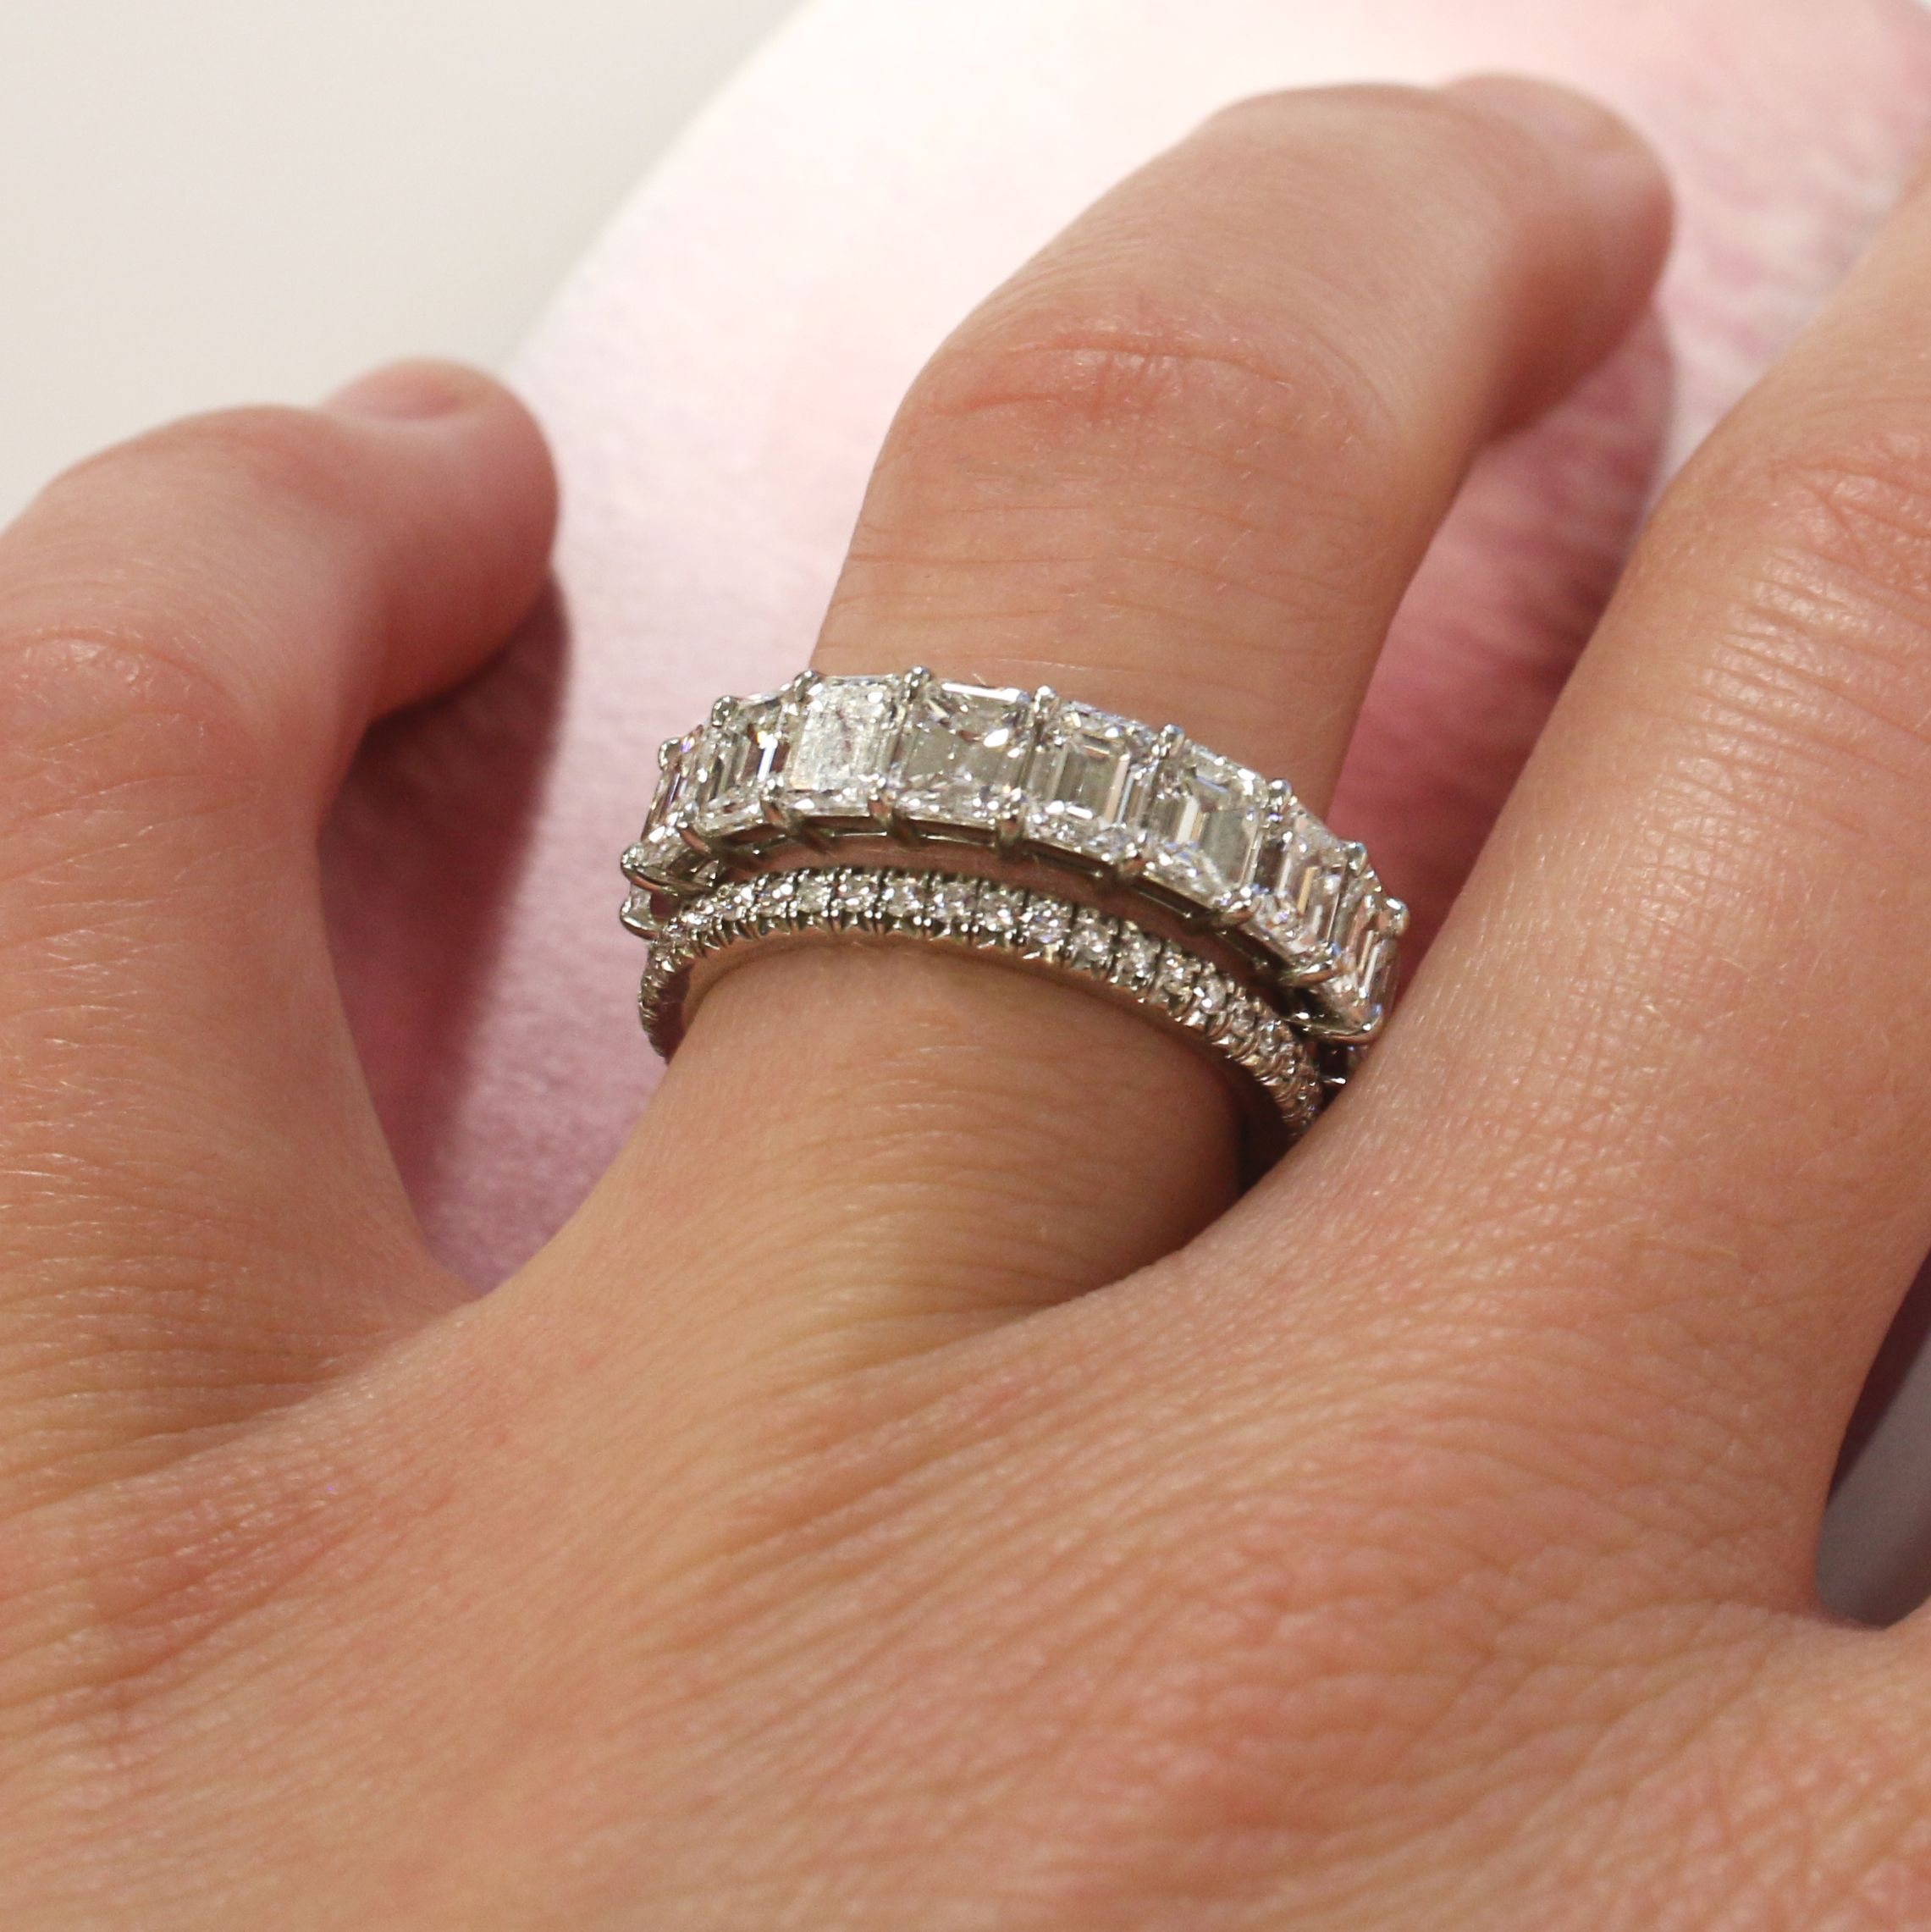 Love This New Trend Two Diamond Bands Instead Of An Engagement Ring And A Wedding Band Stackable Rings Wedding Diamond Wedding Bands Wedding Rings